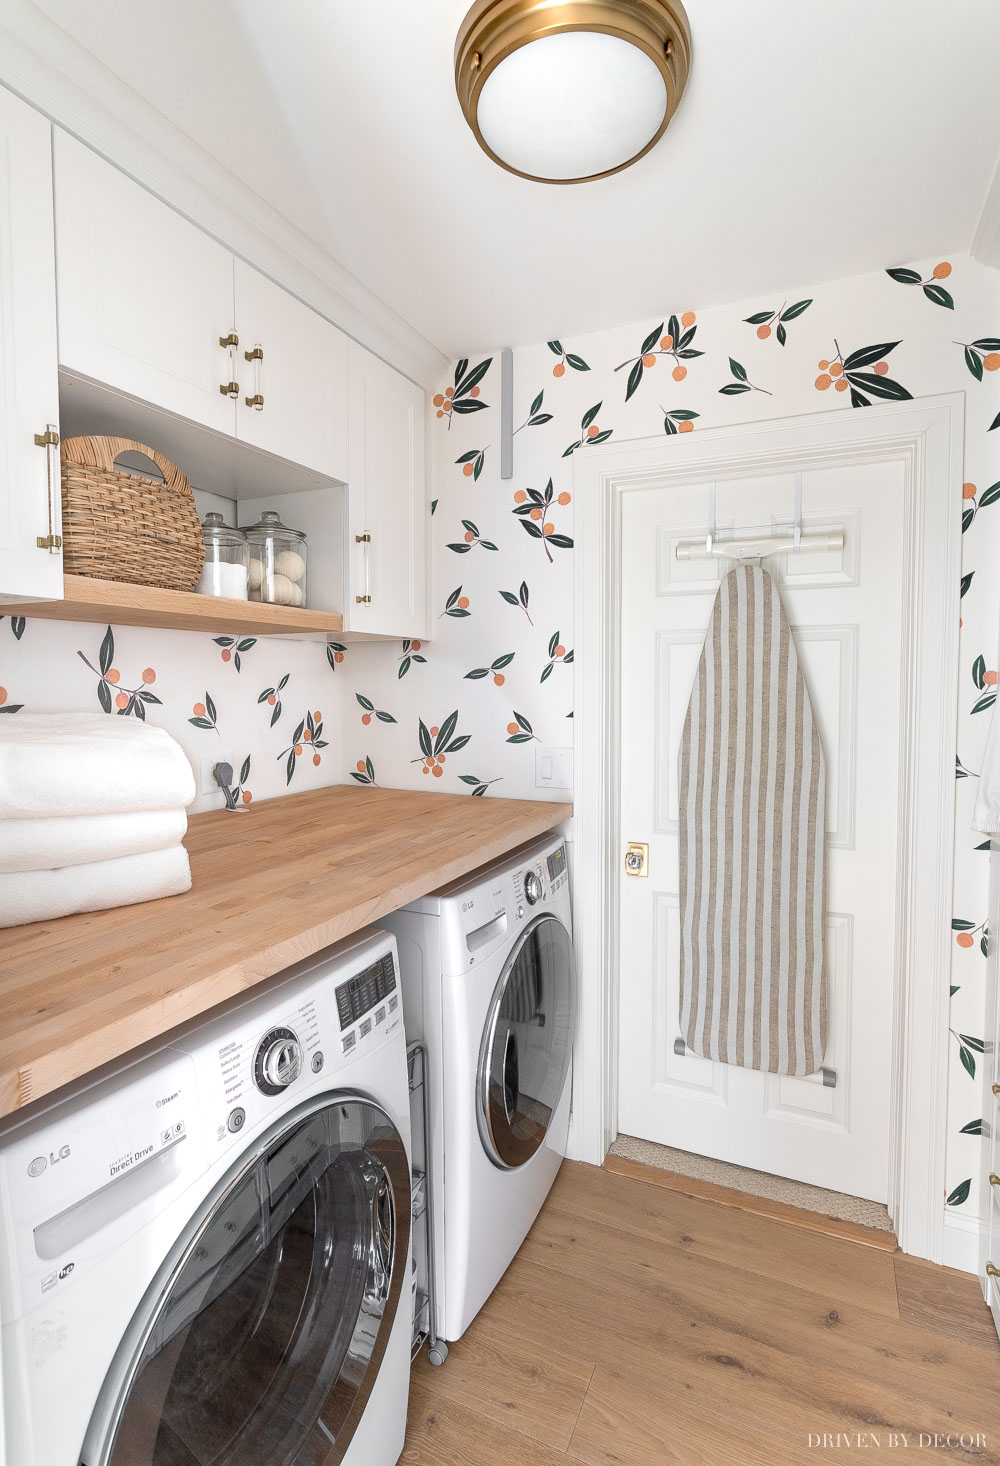 Love the IKEA cabinets above the washer and dryer in our laundry room!